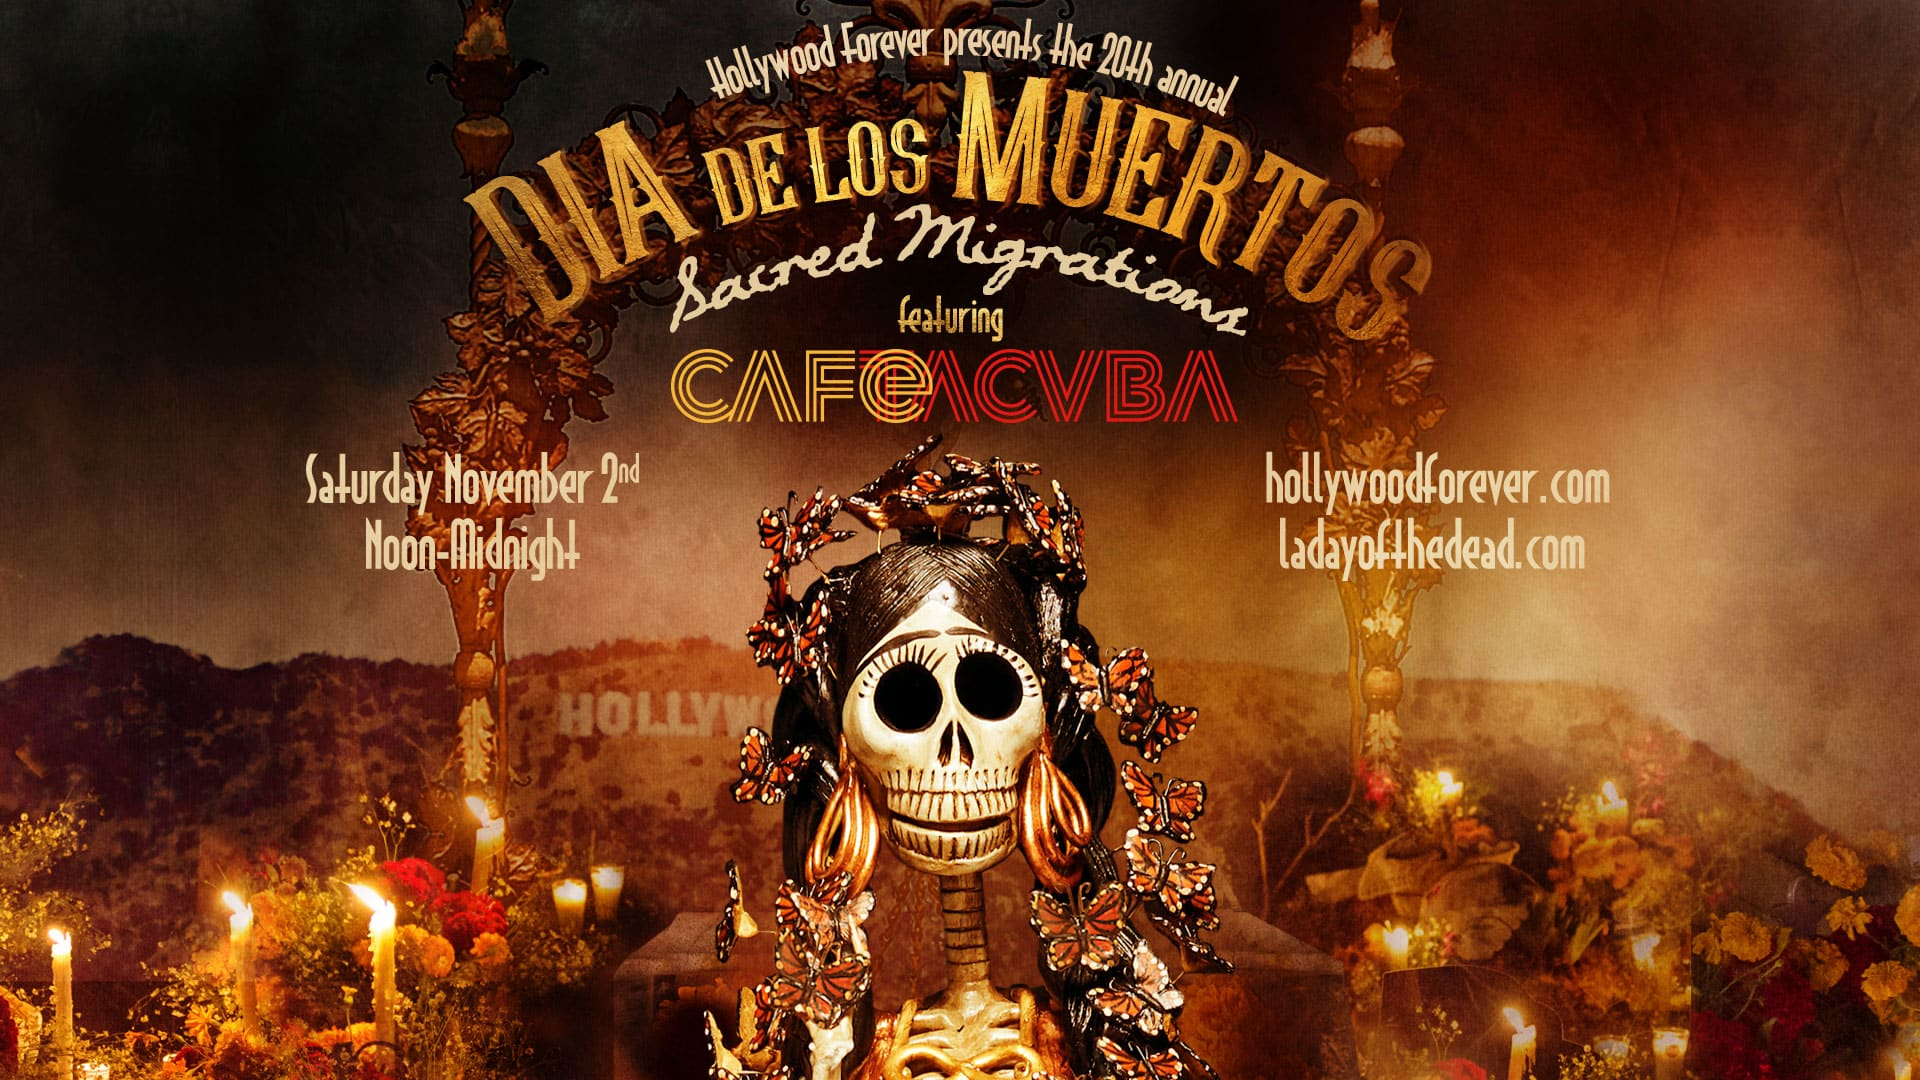 Hollywood Forever's 20th annual Dia de los Muertos